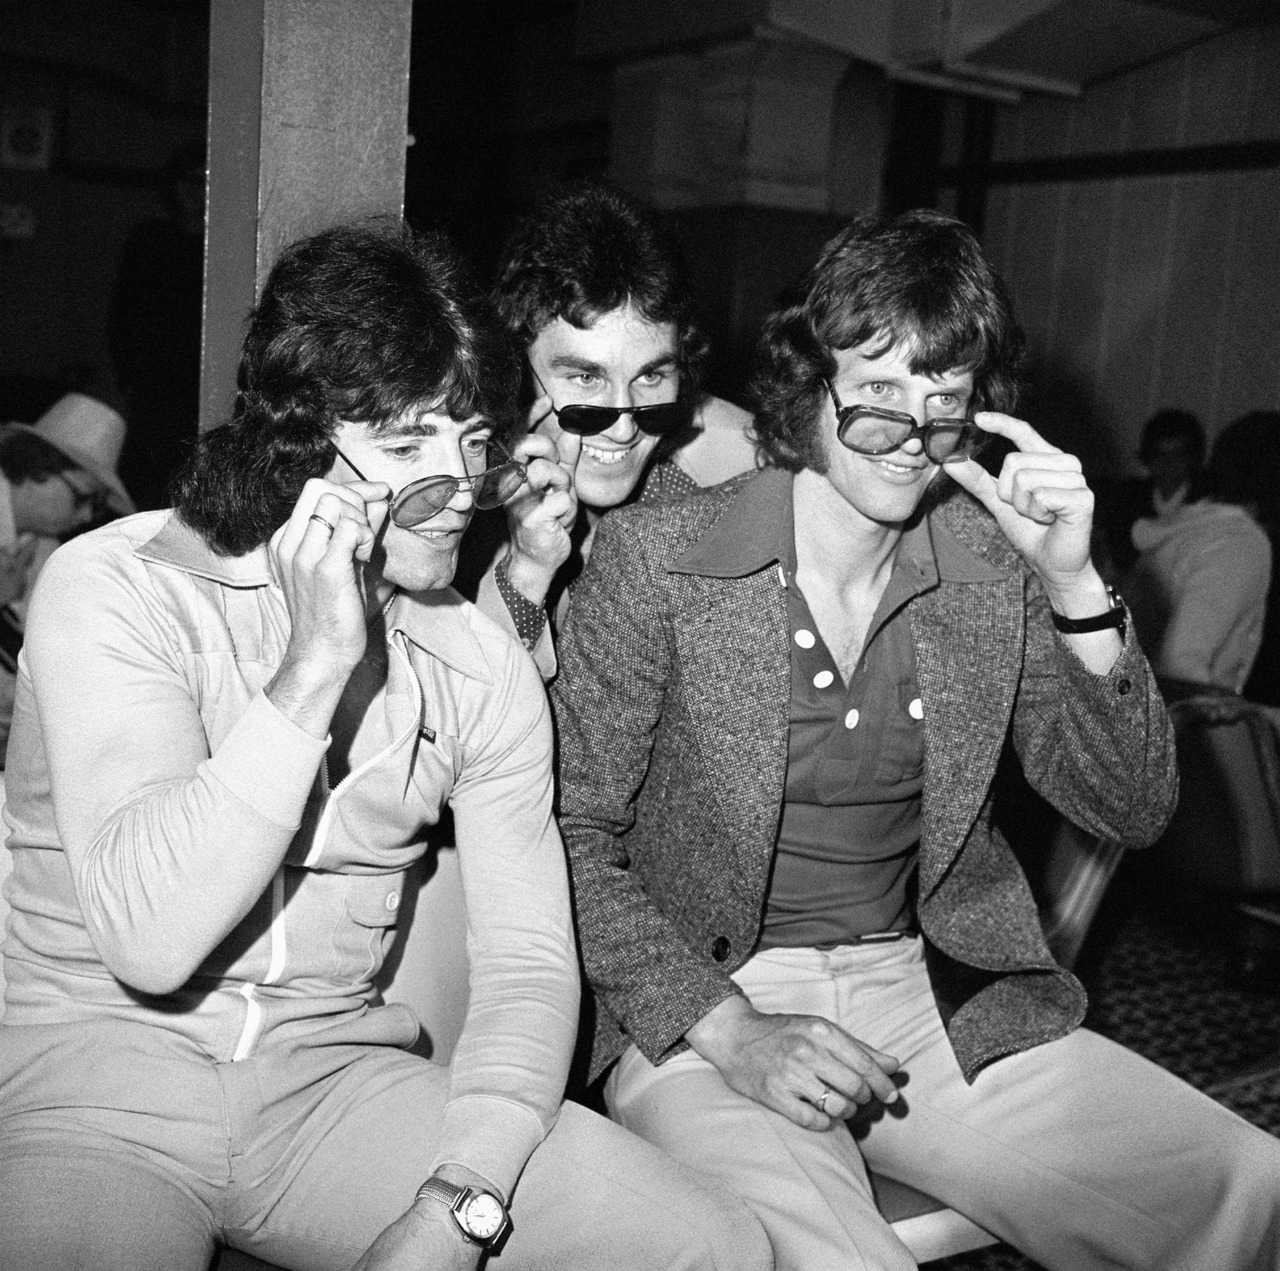 Kevin Keegan, Gerry Francis and Mick Channon: Swagtastic in 1972.